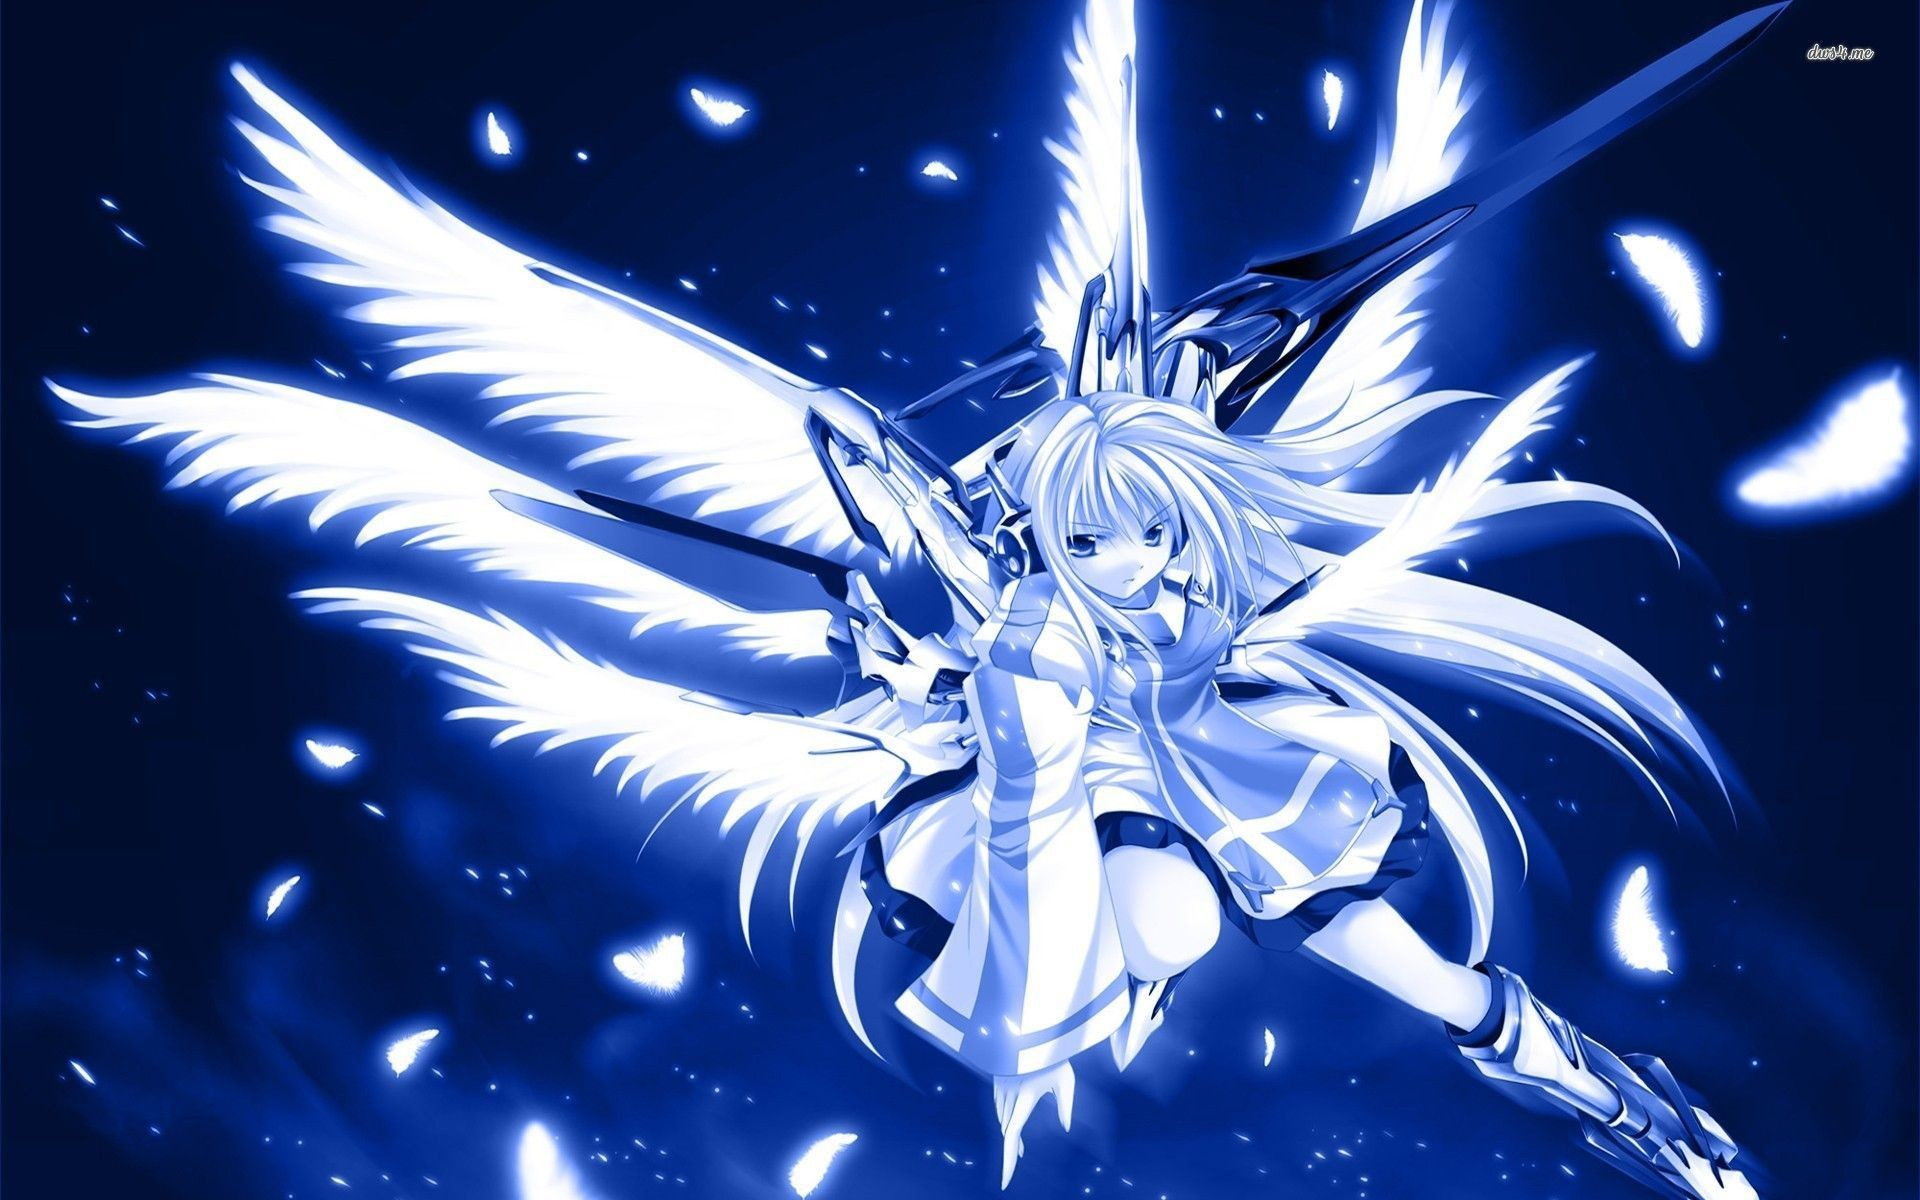 1920x1200 Blue warrior angel wallpaper - Anime wallpapers - #19305